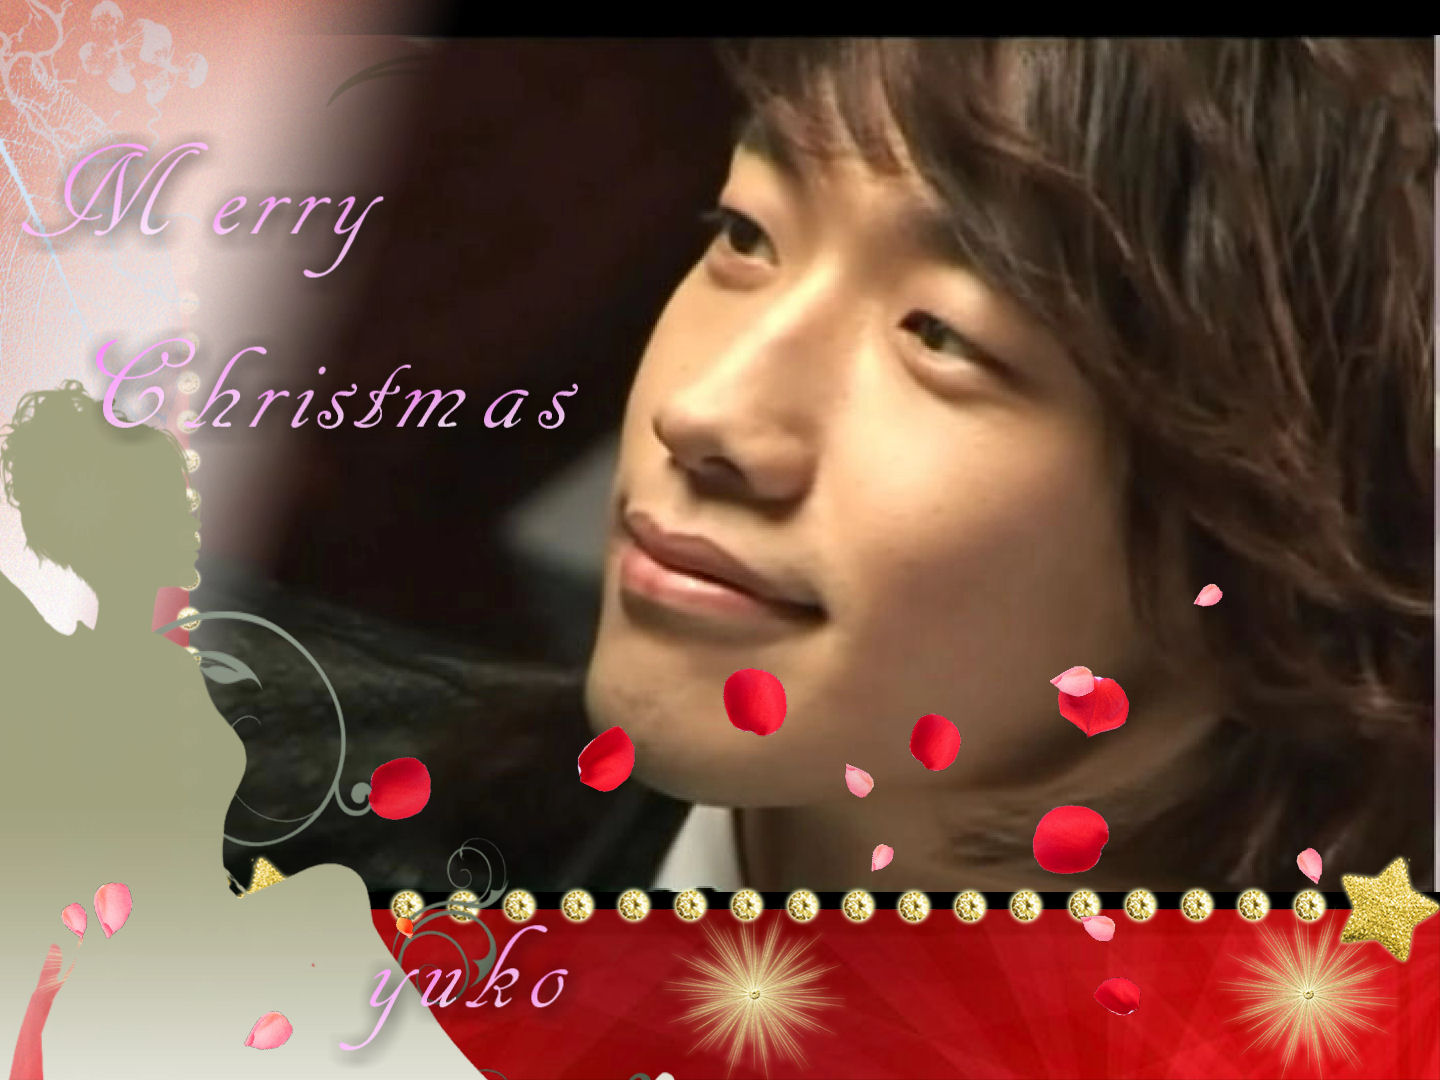 merry christmas good night images